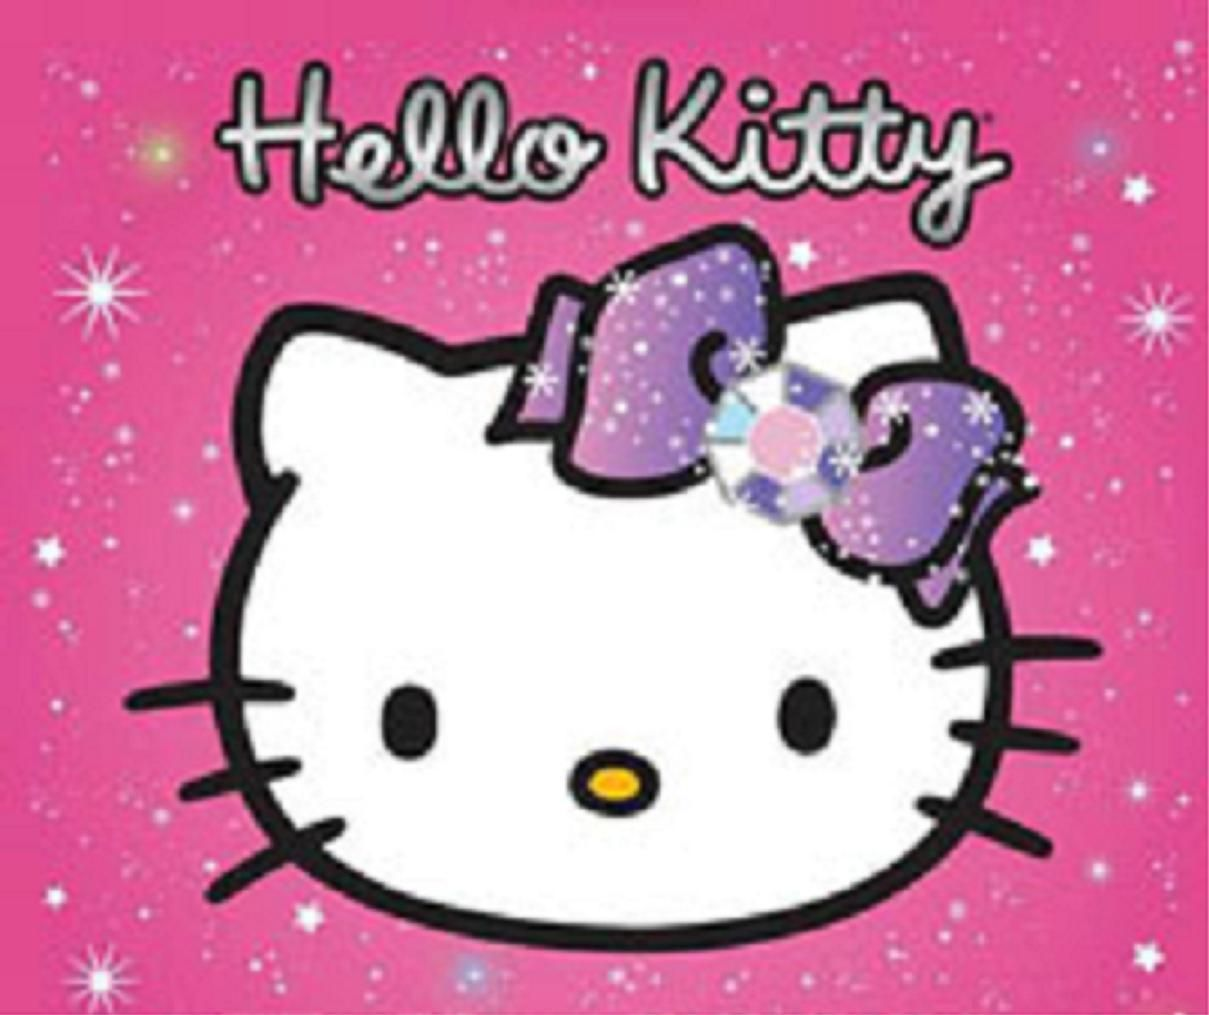 hello kitty pictures to print | Digital nail art printers | Fashion ...